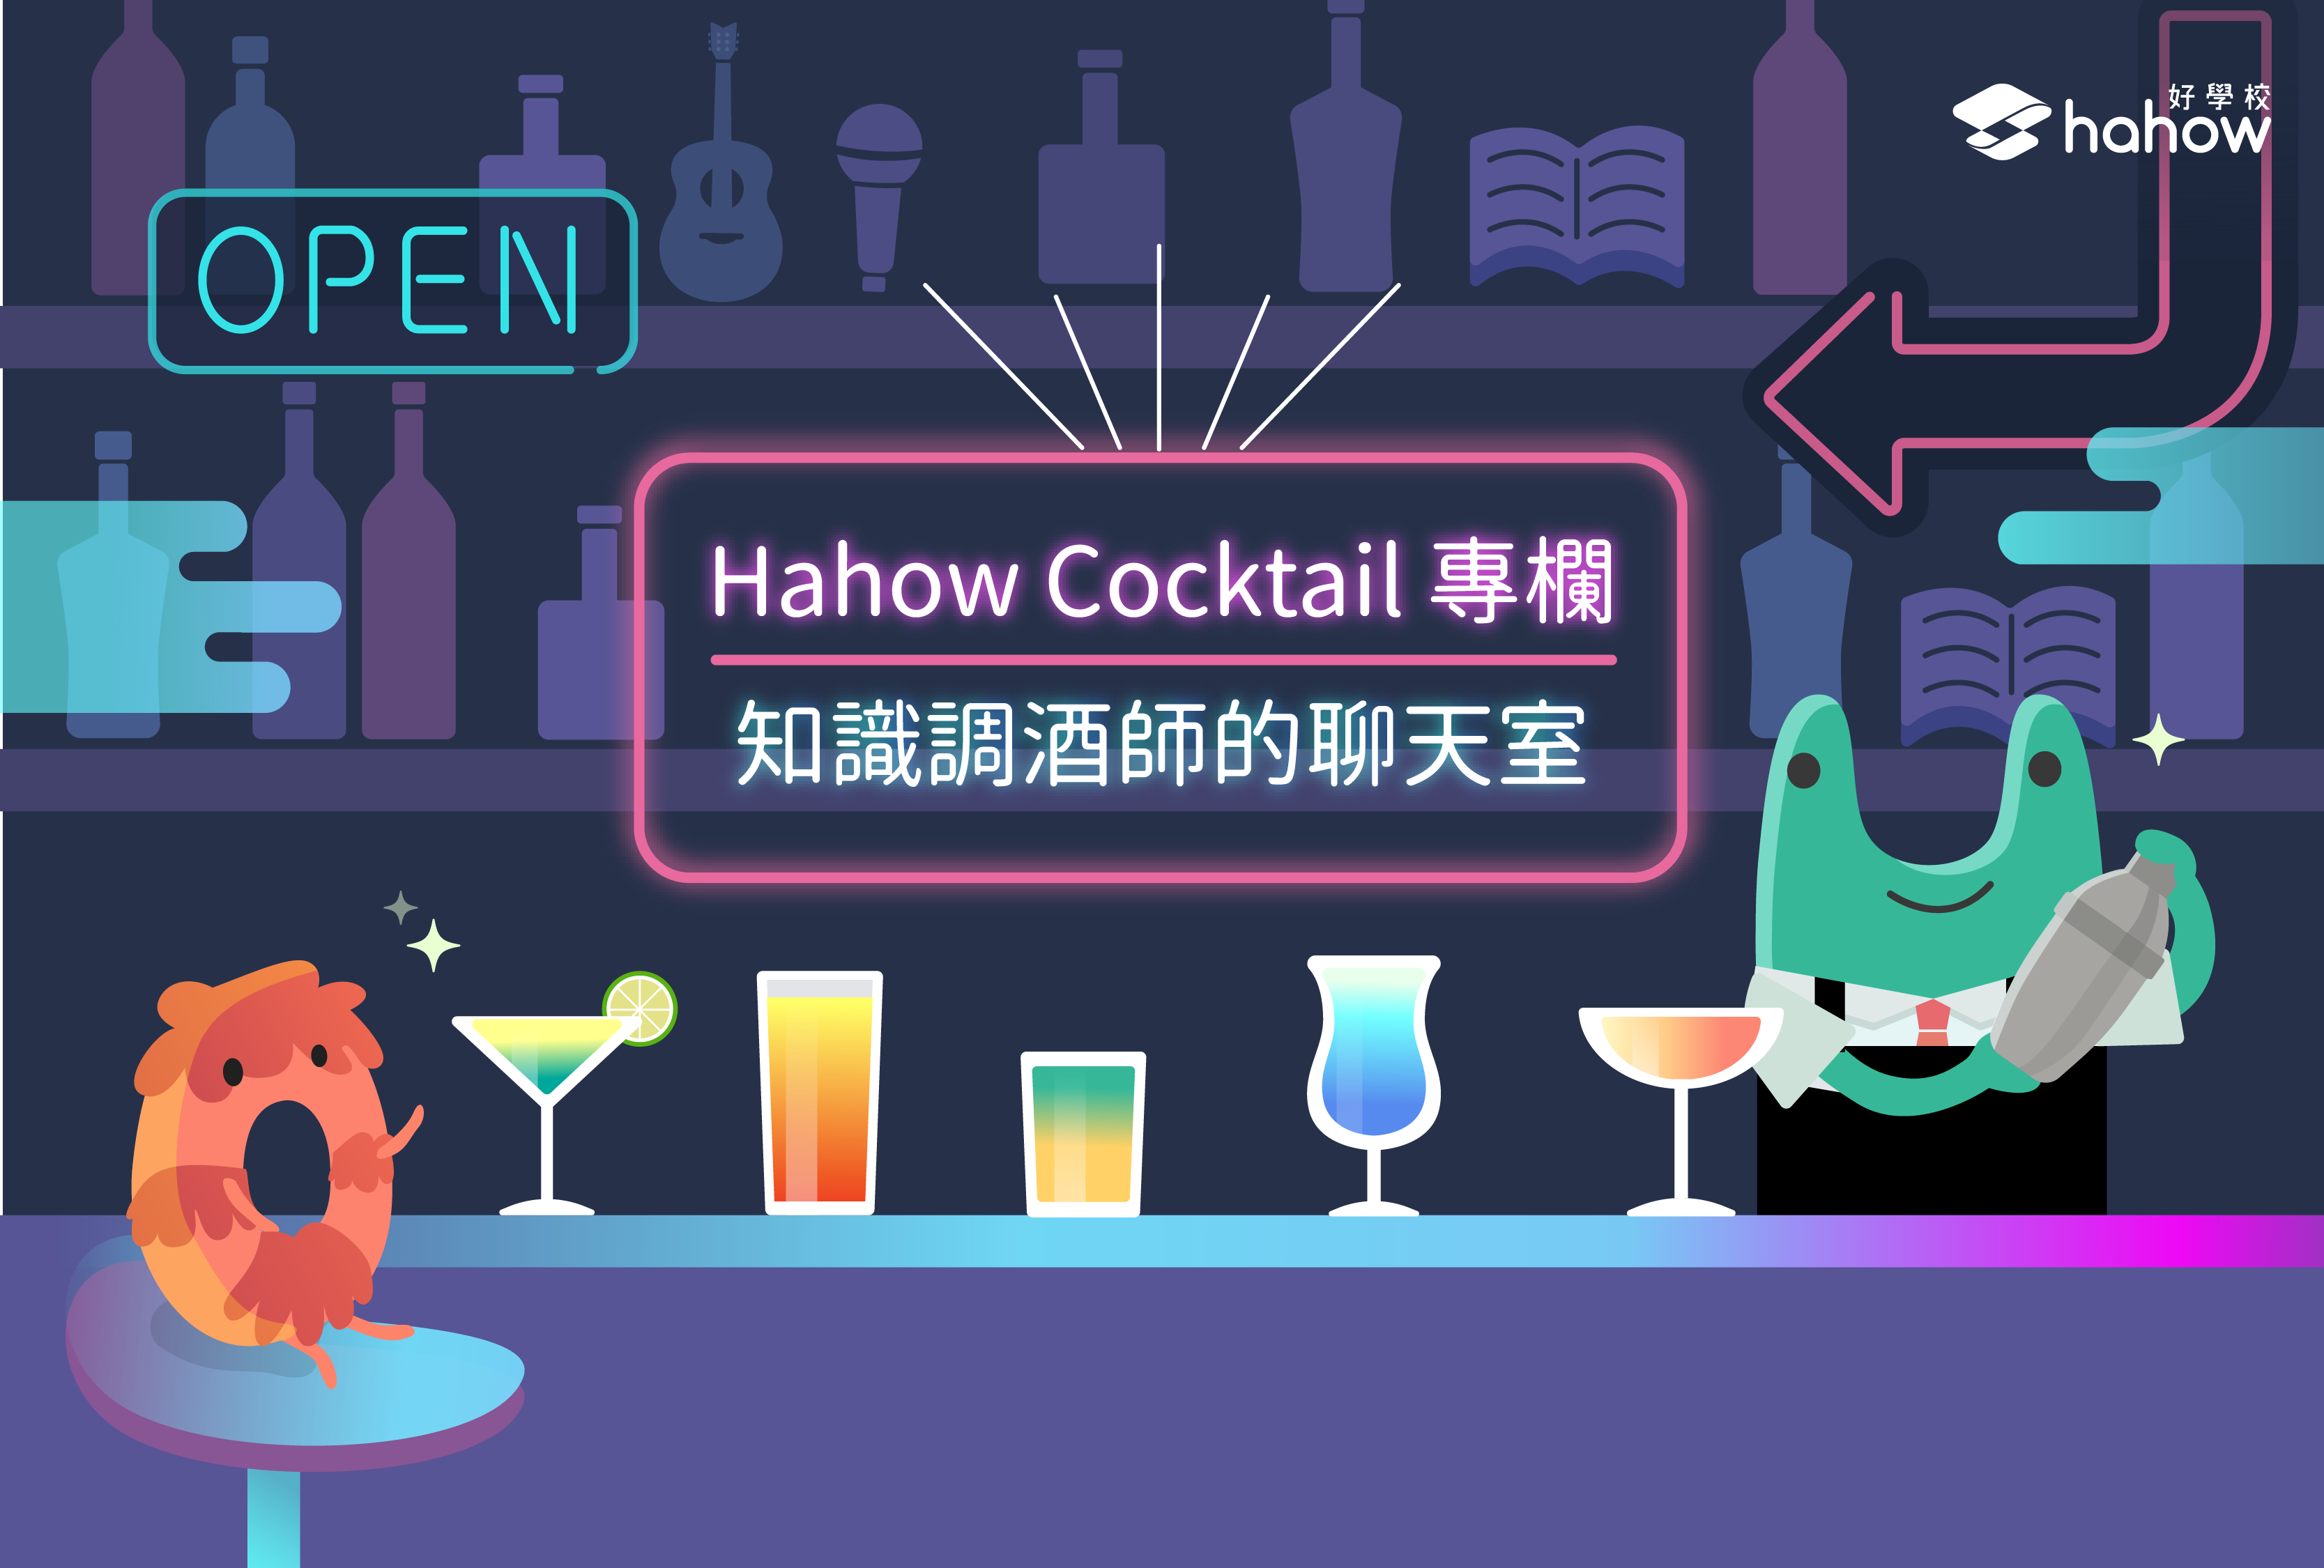 HAHOW-COCKTAIL-4